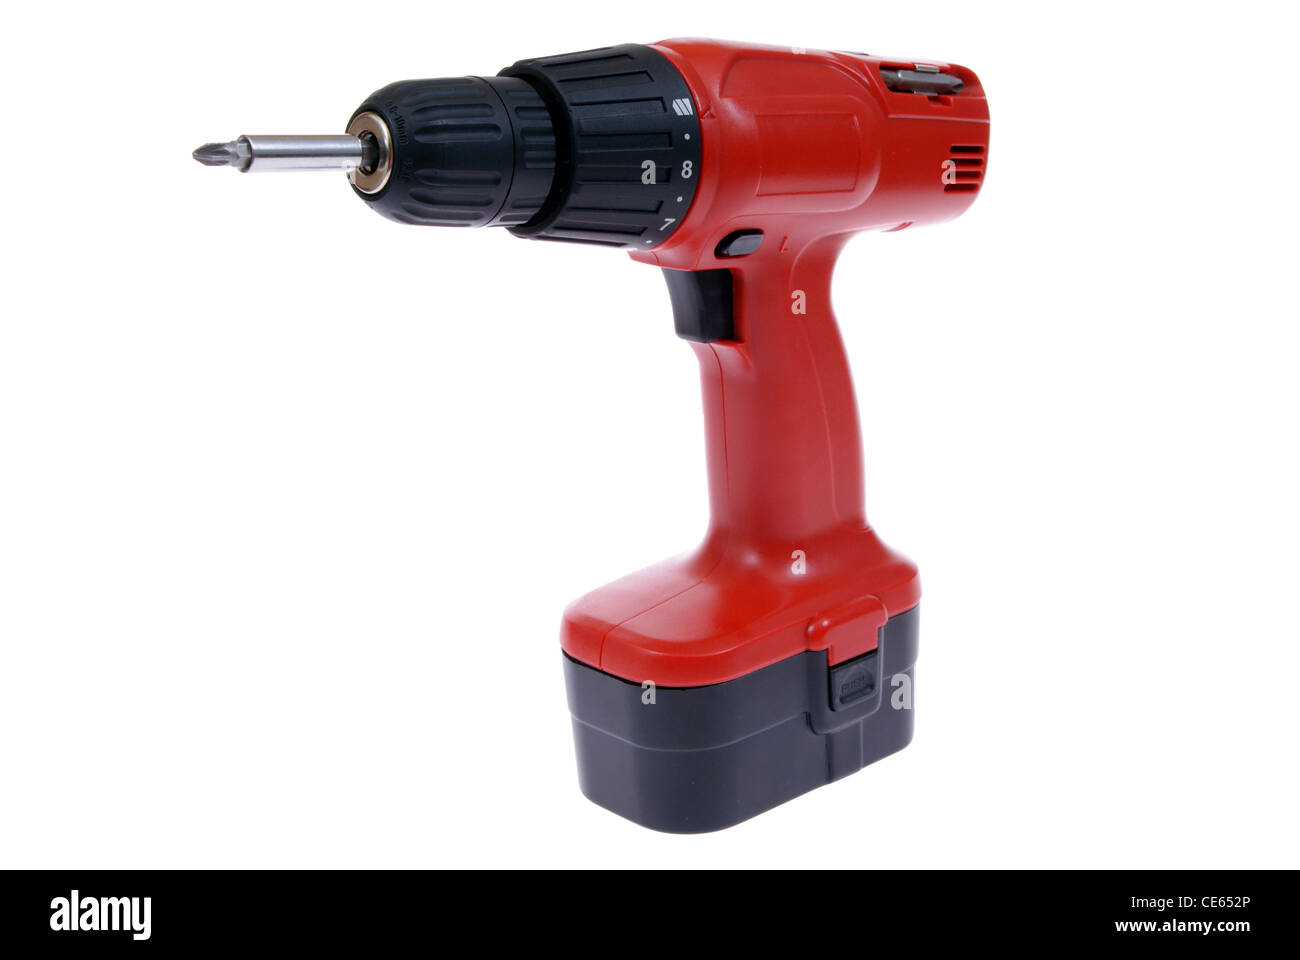 red power drill on white background - Stock Image